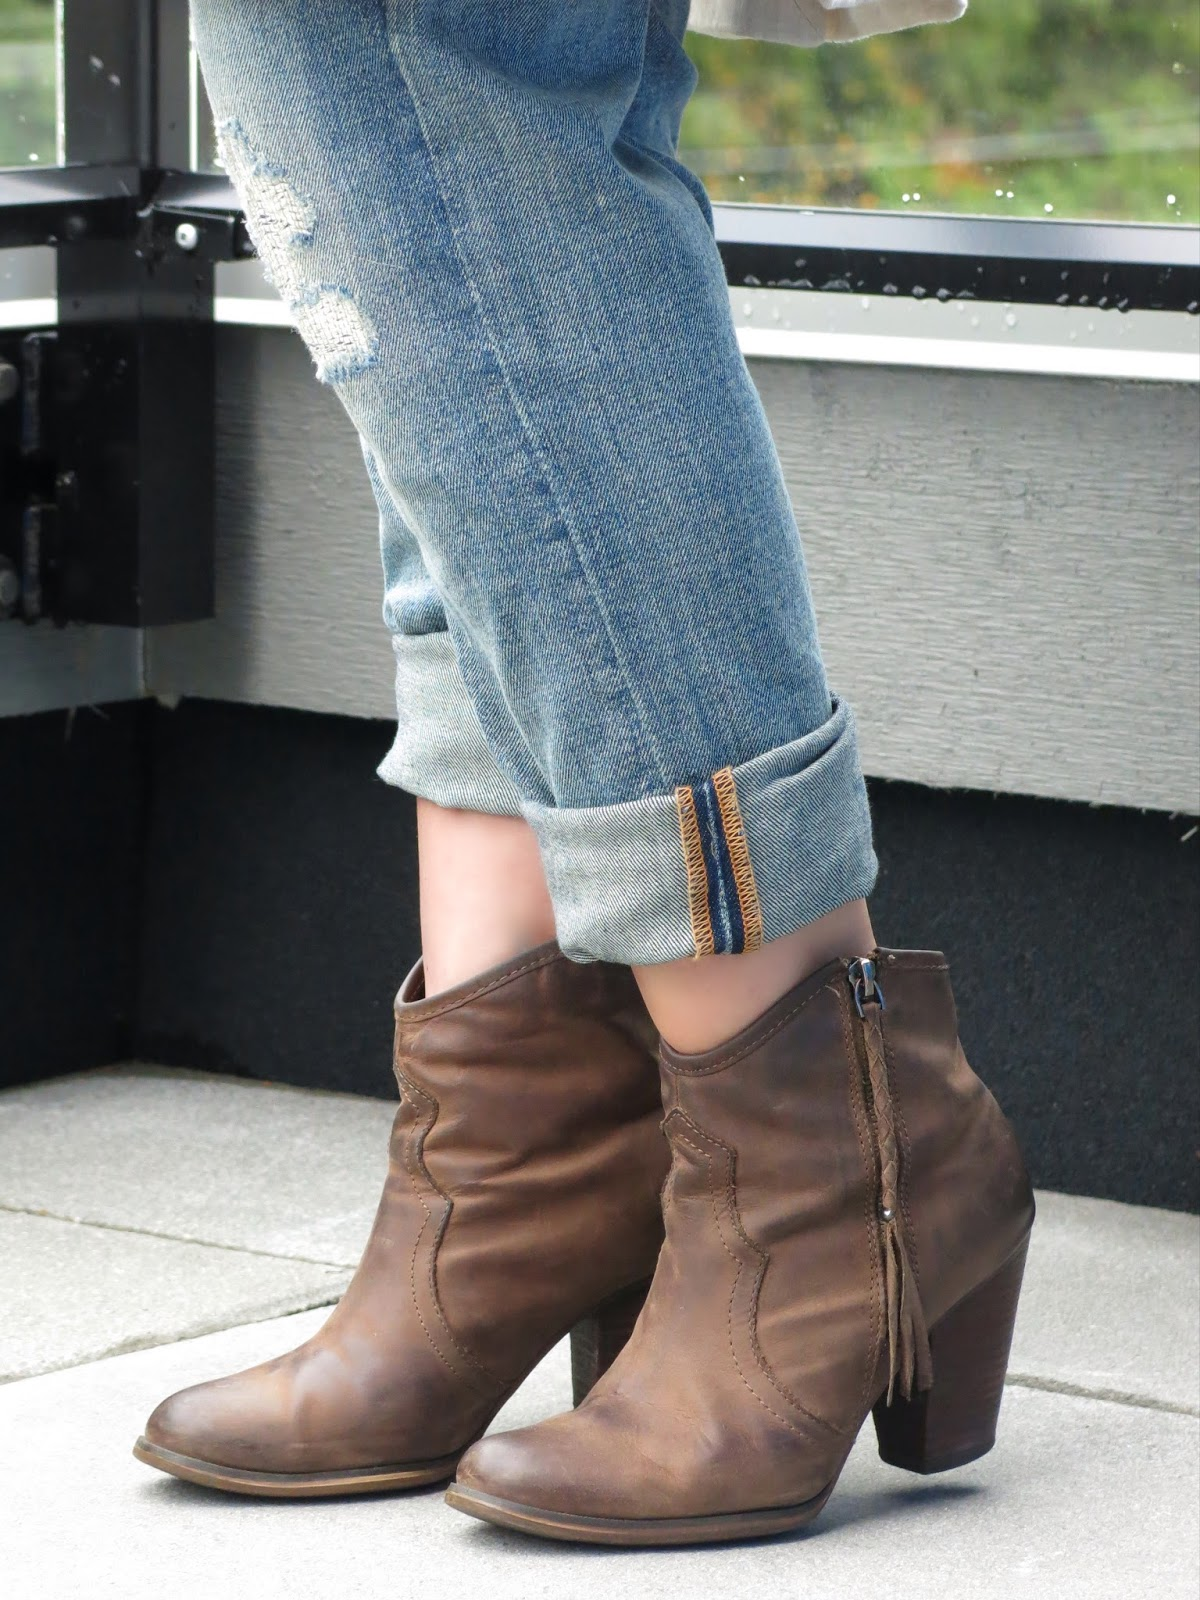 boyfriend jeans and Aldo stack-heeled ankle boots